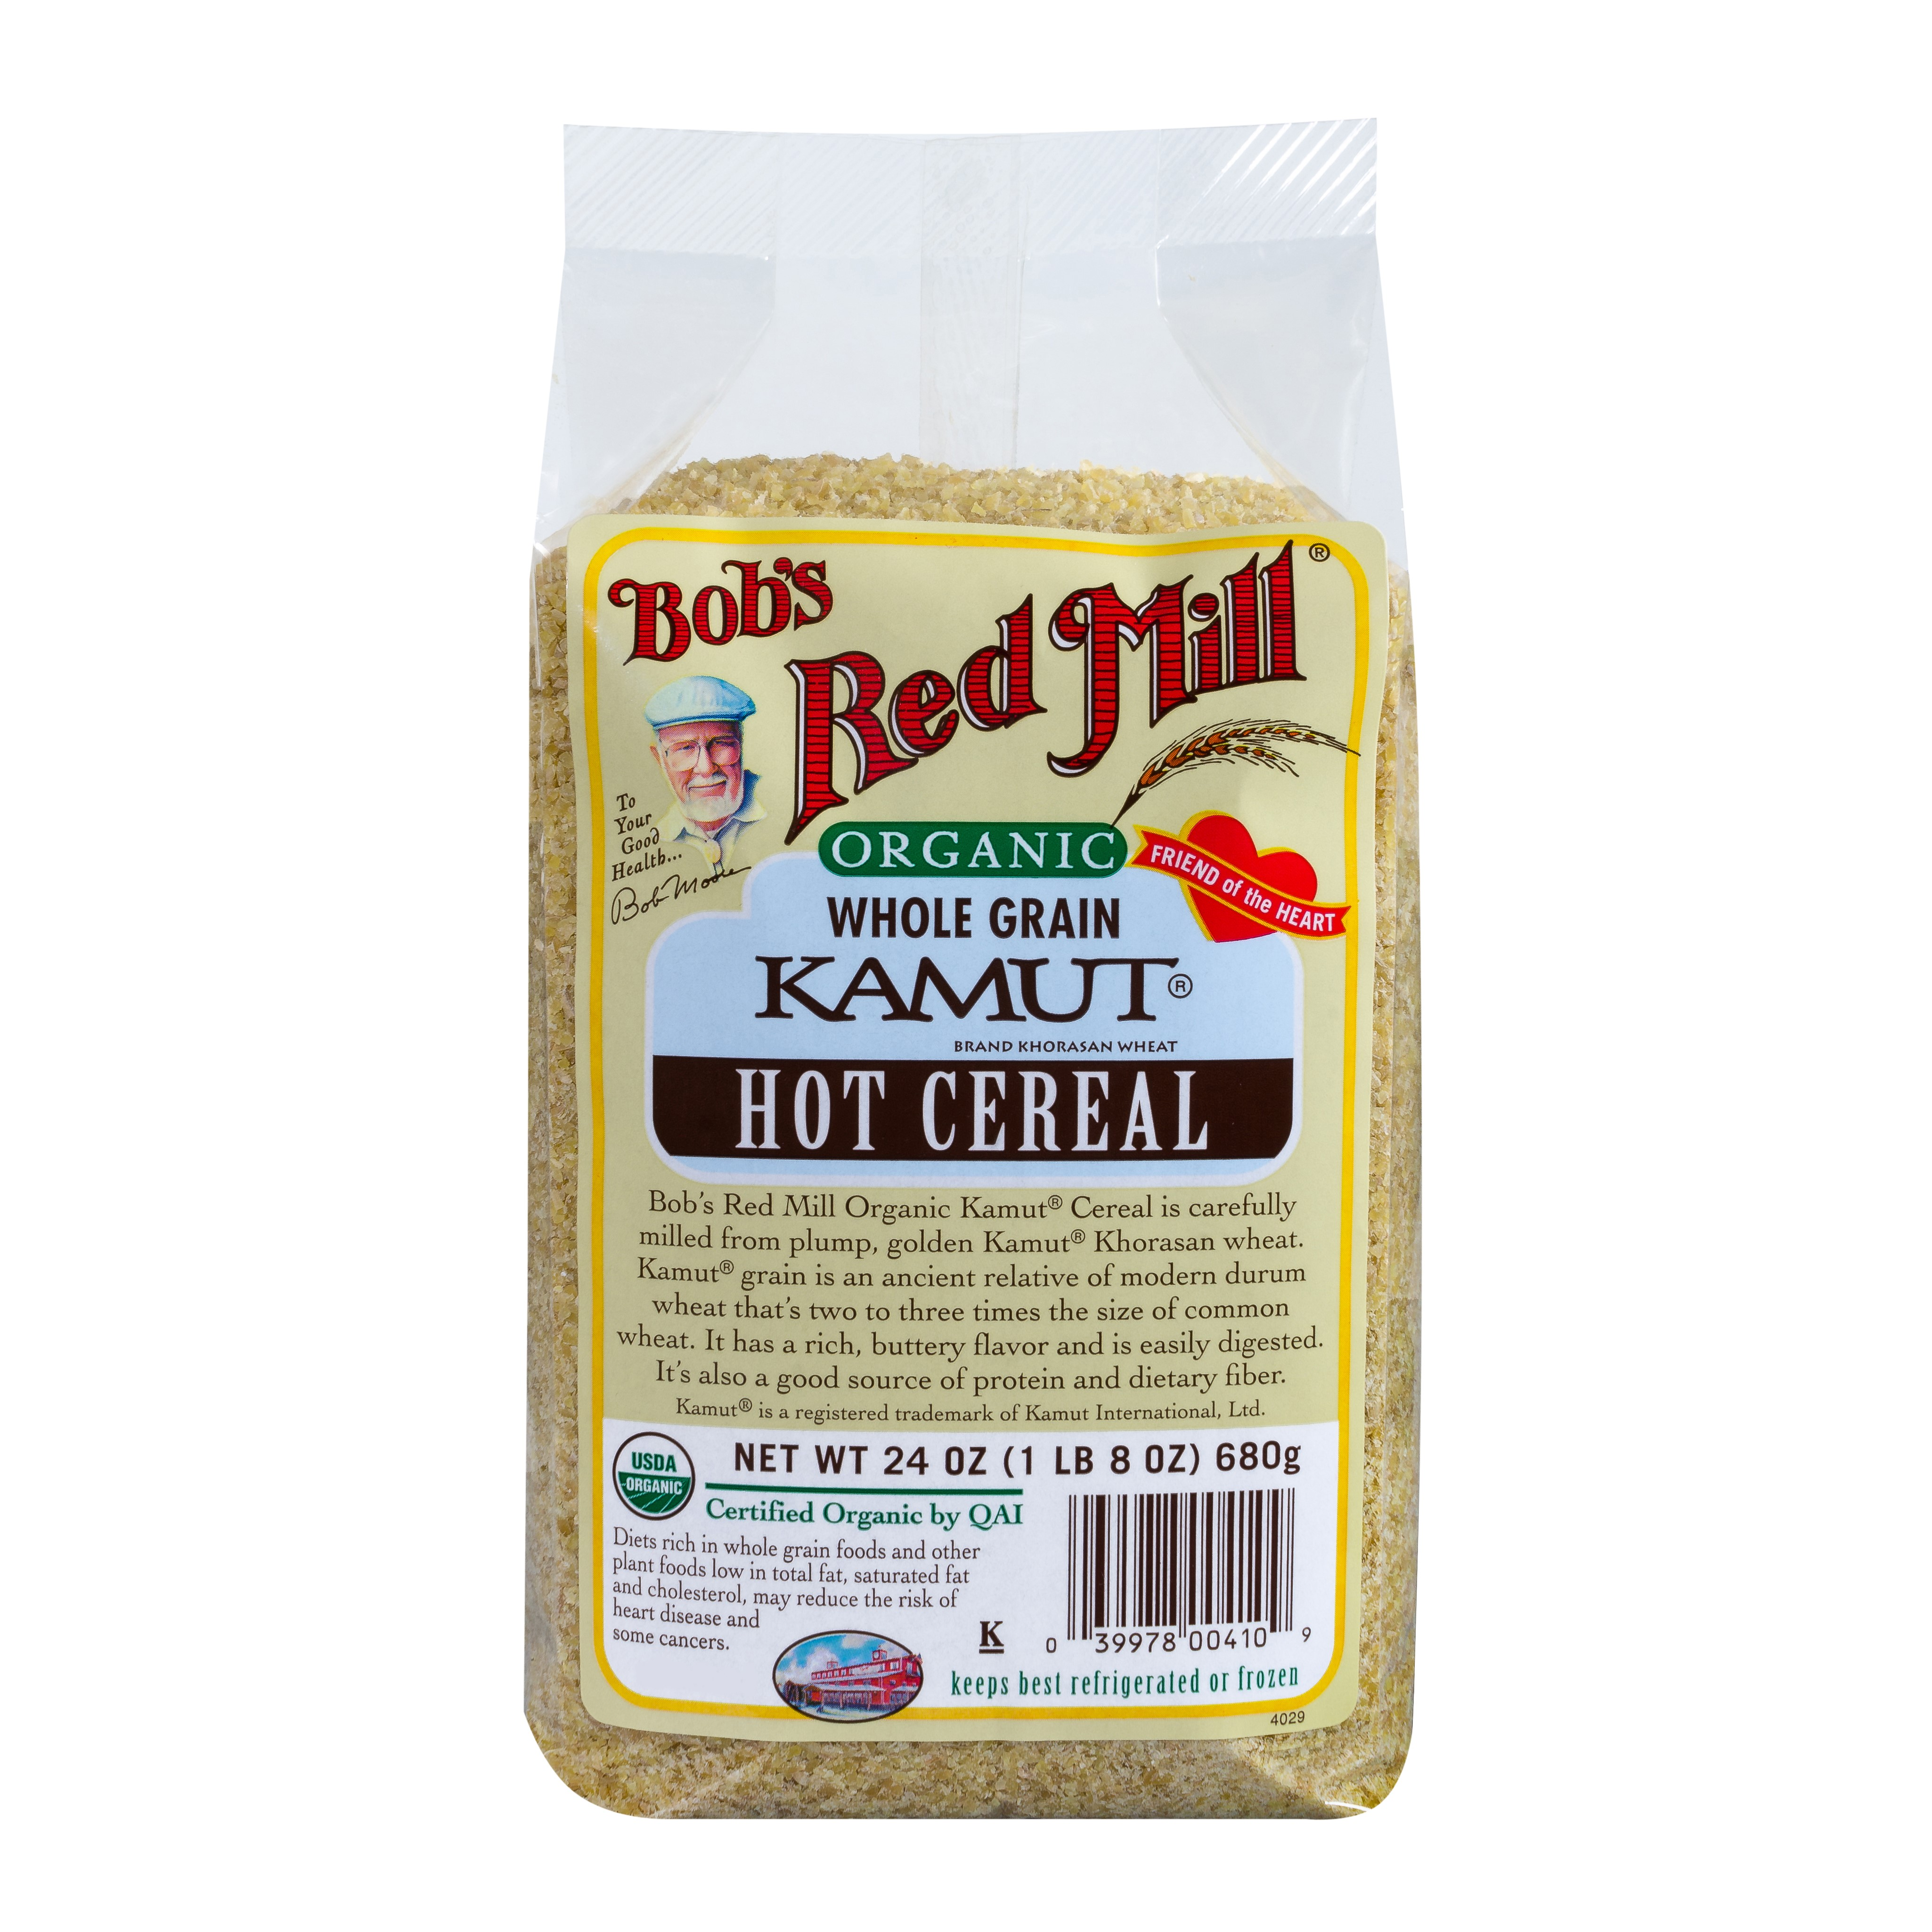 Bobs Red Mill Organic Hot Cereal, Kamut Cereal, 24 Oz